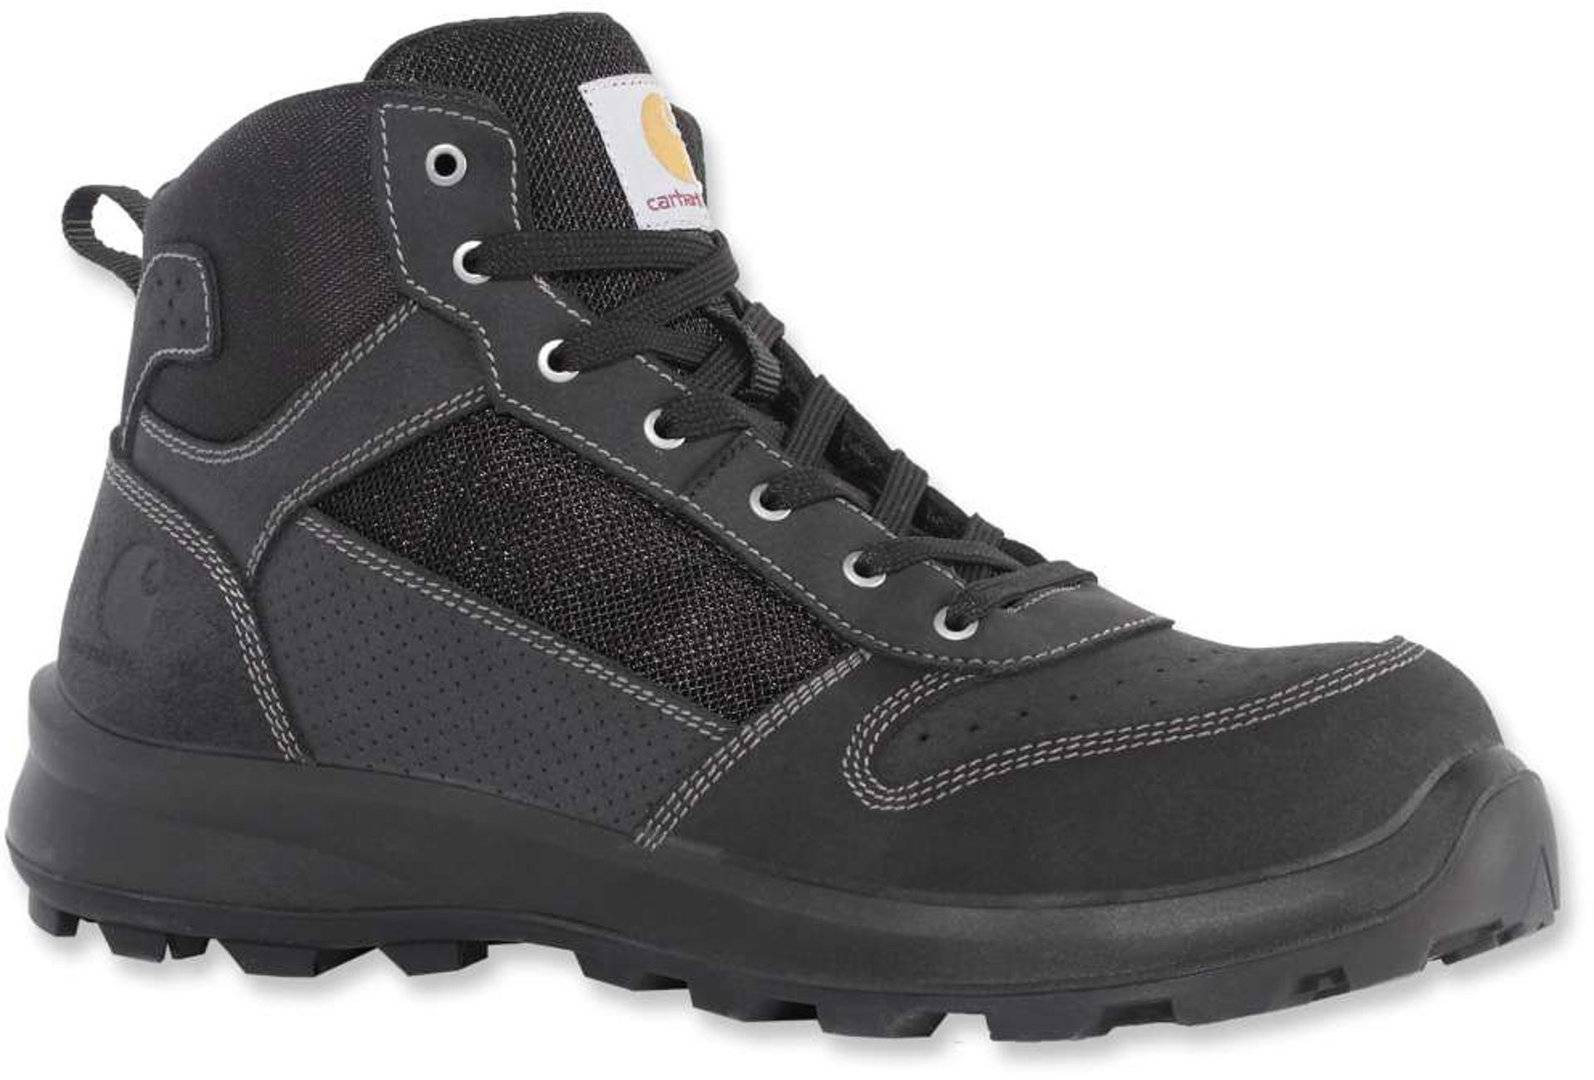 Carhartt Mid S1P Safety Boots Black 44